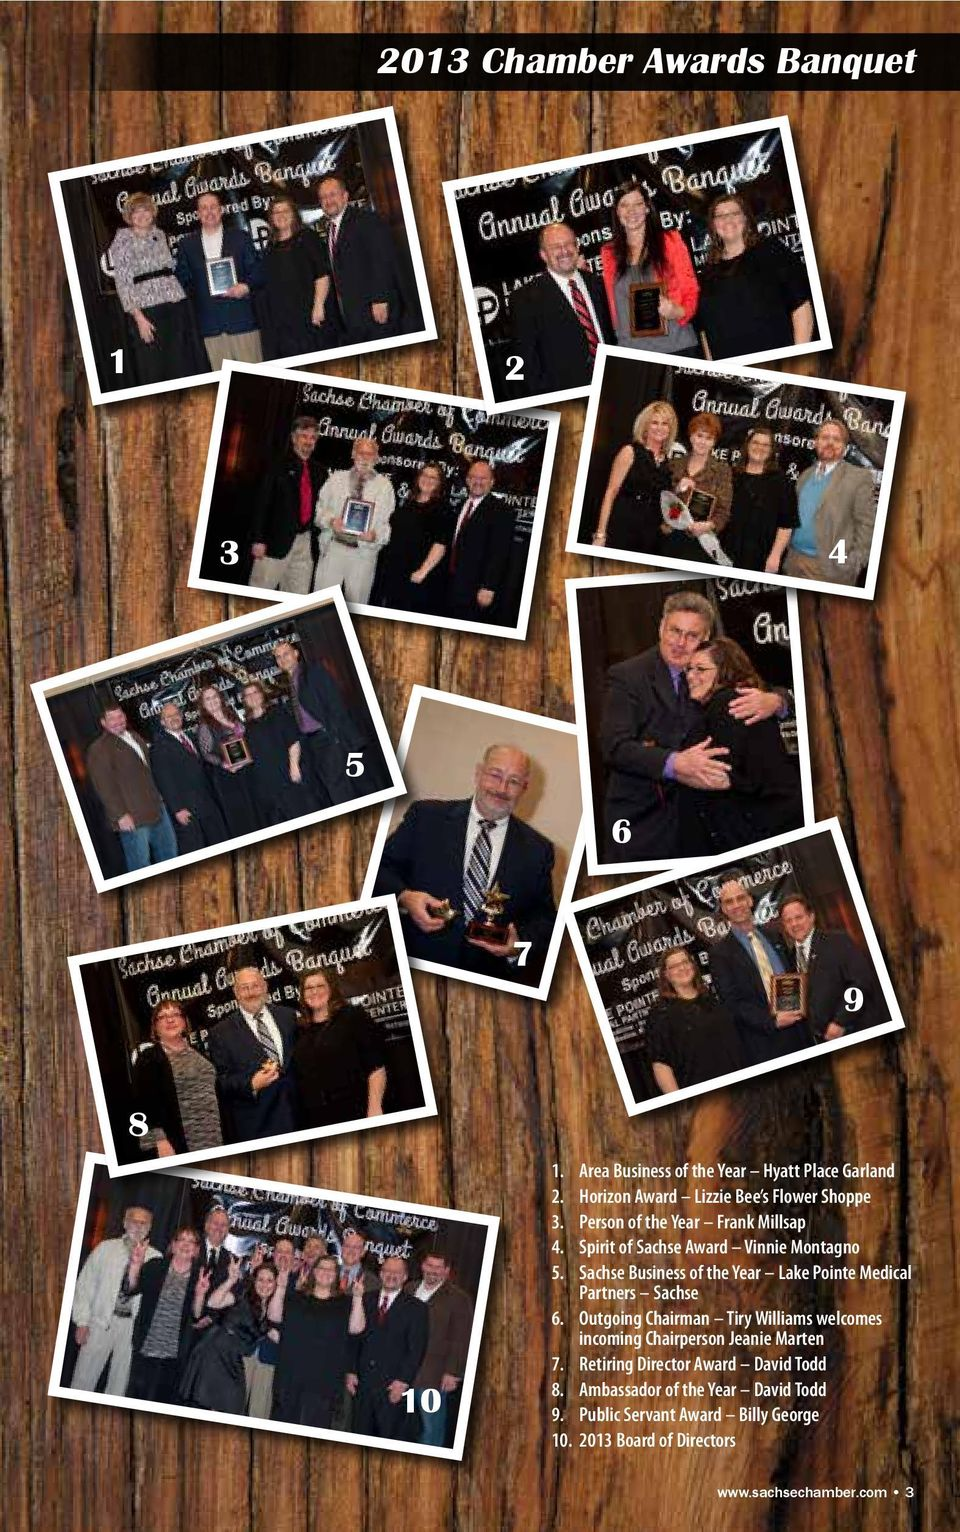 Sachse Business of the Year Lake Pointe Medical Partners Sachse 6.